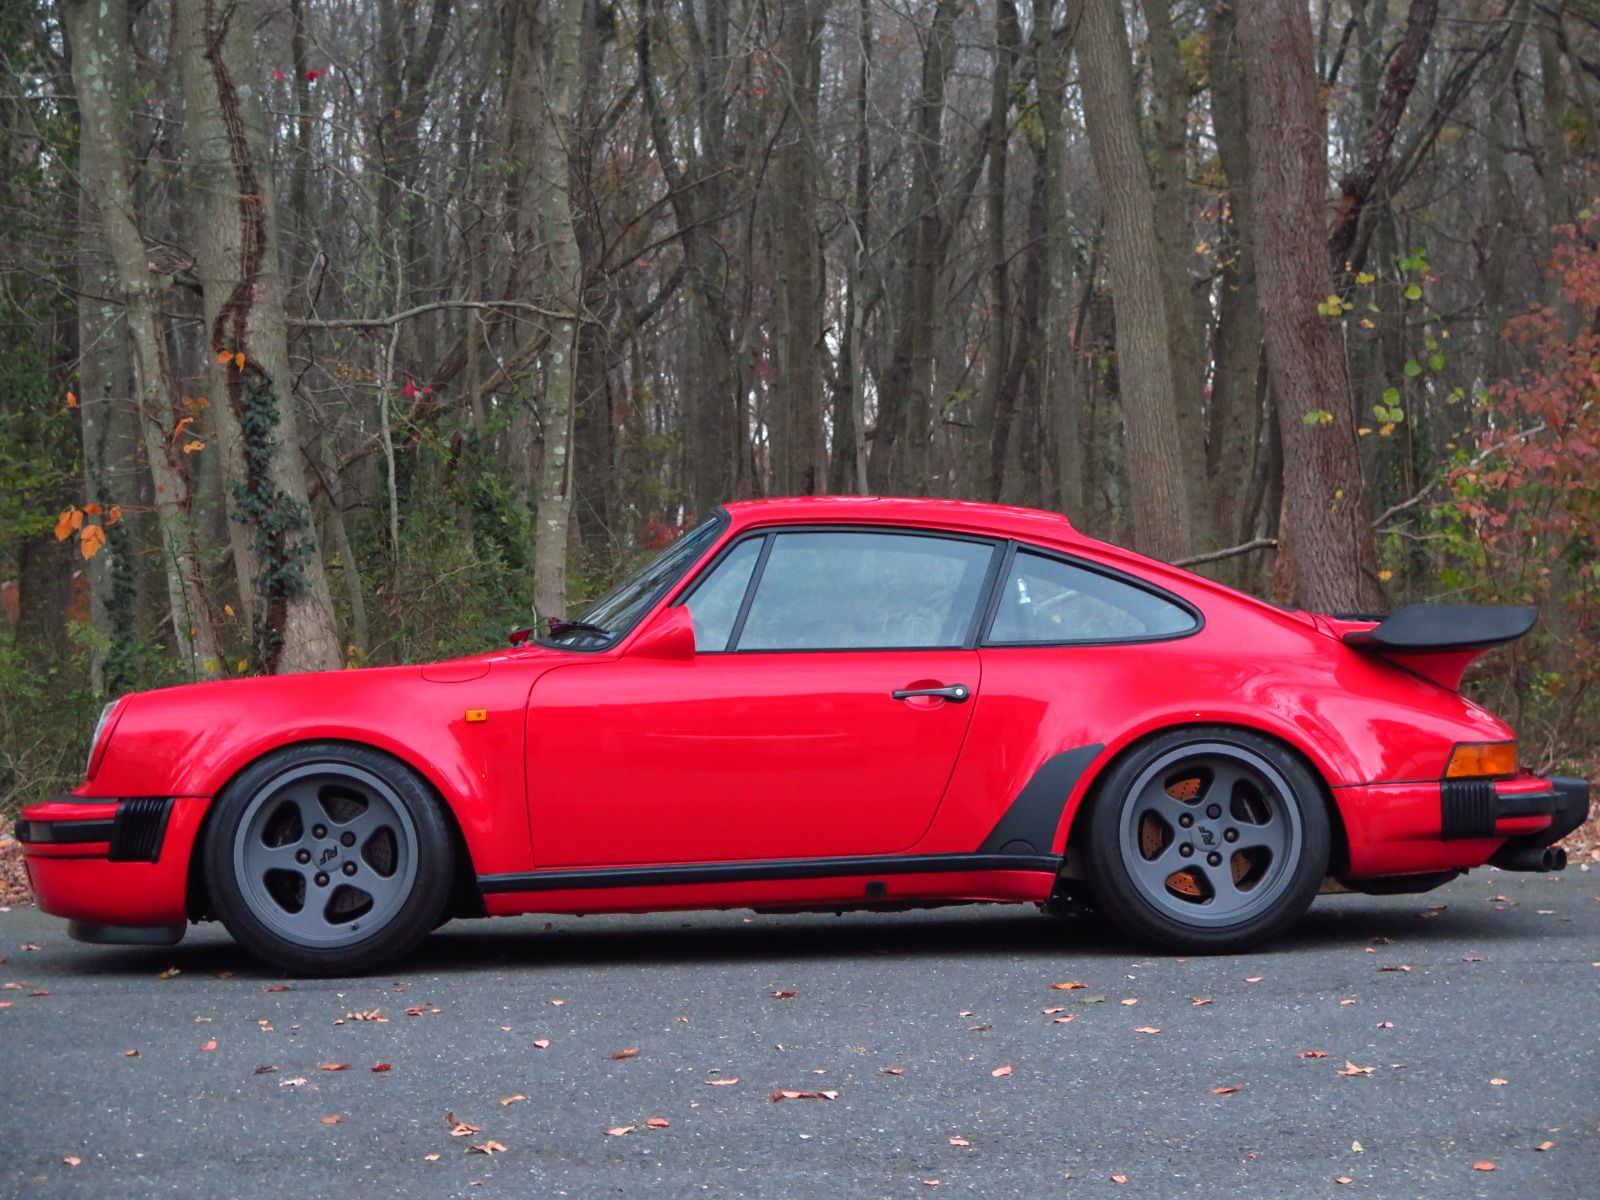 This 1986 porsche 911 turbo has 56k miles and is modified with this 1986 porsche 911 turbo has 56k miles and is modified with many ruf parts vanachro Image collections